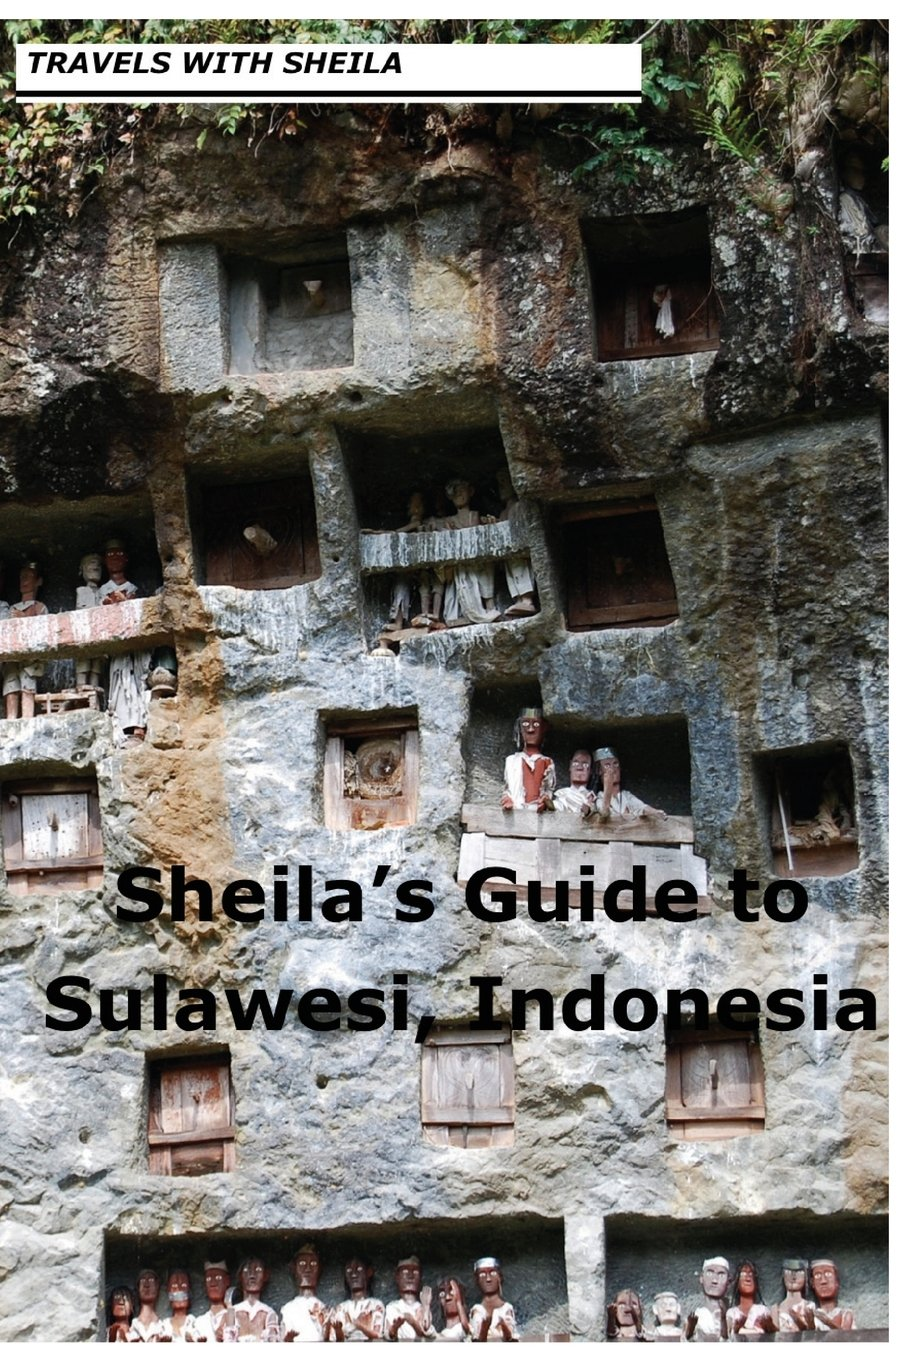 Sheila's Guide to Sulawesi, Indonesia pdf